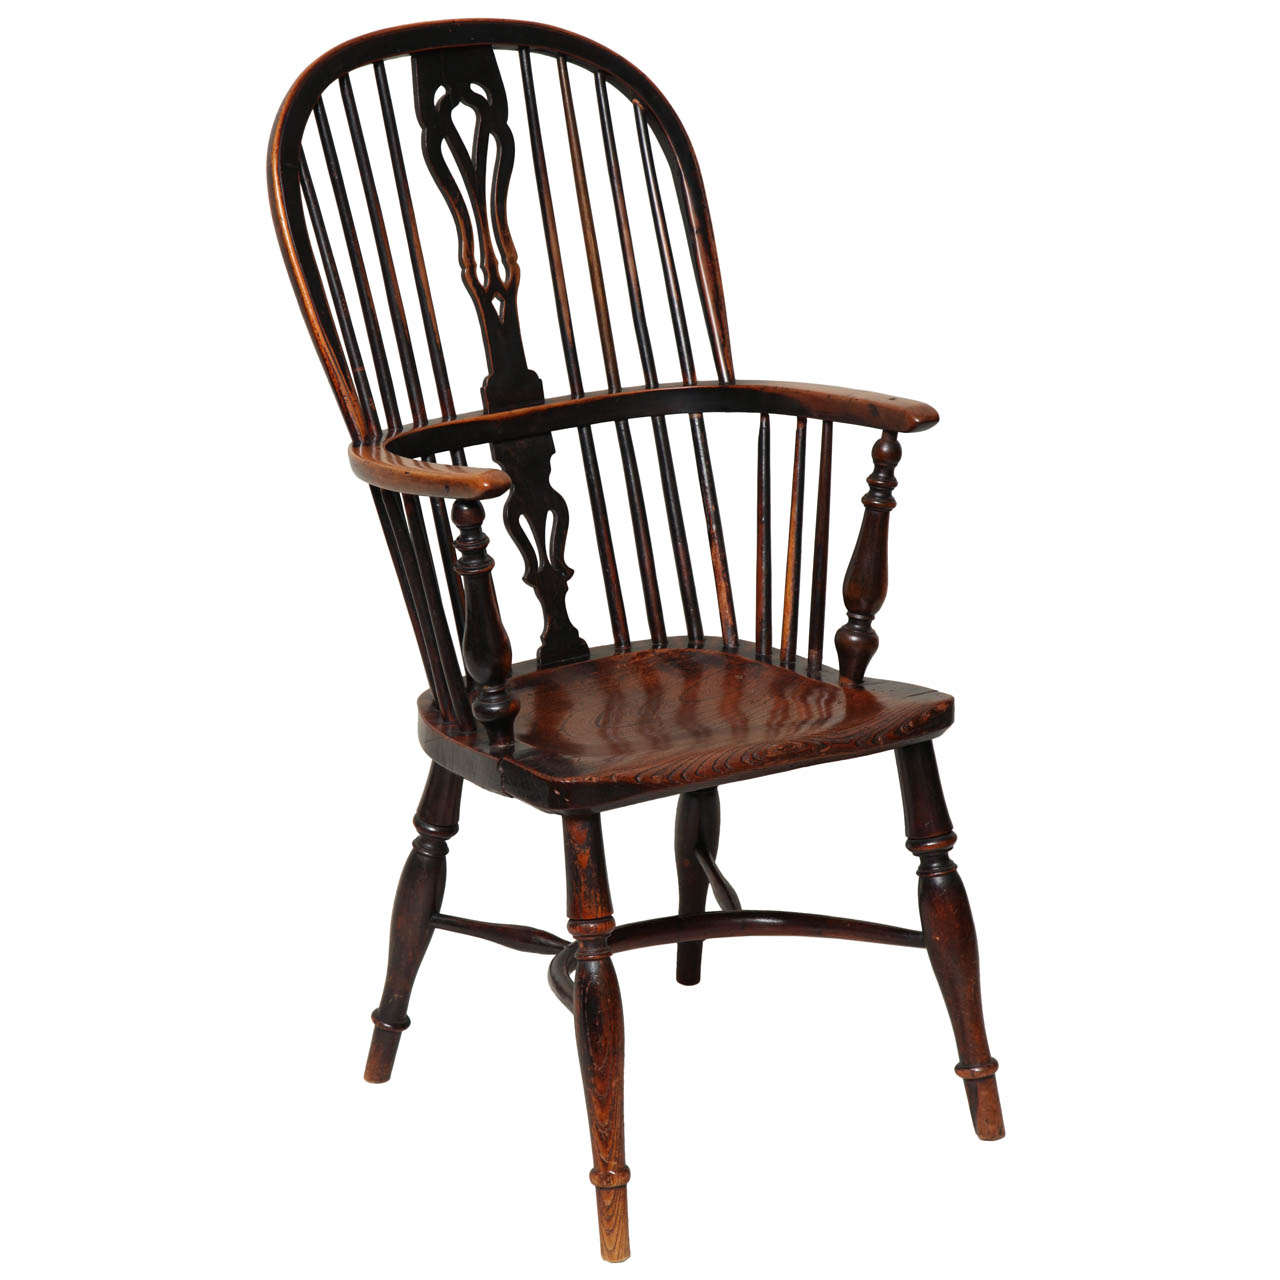 English Yew Wood Hoop Back Windsor Armchair